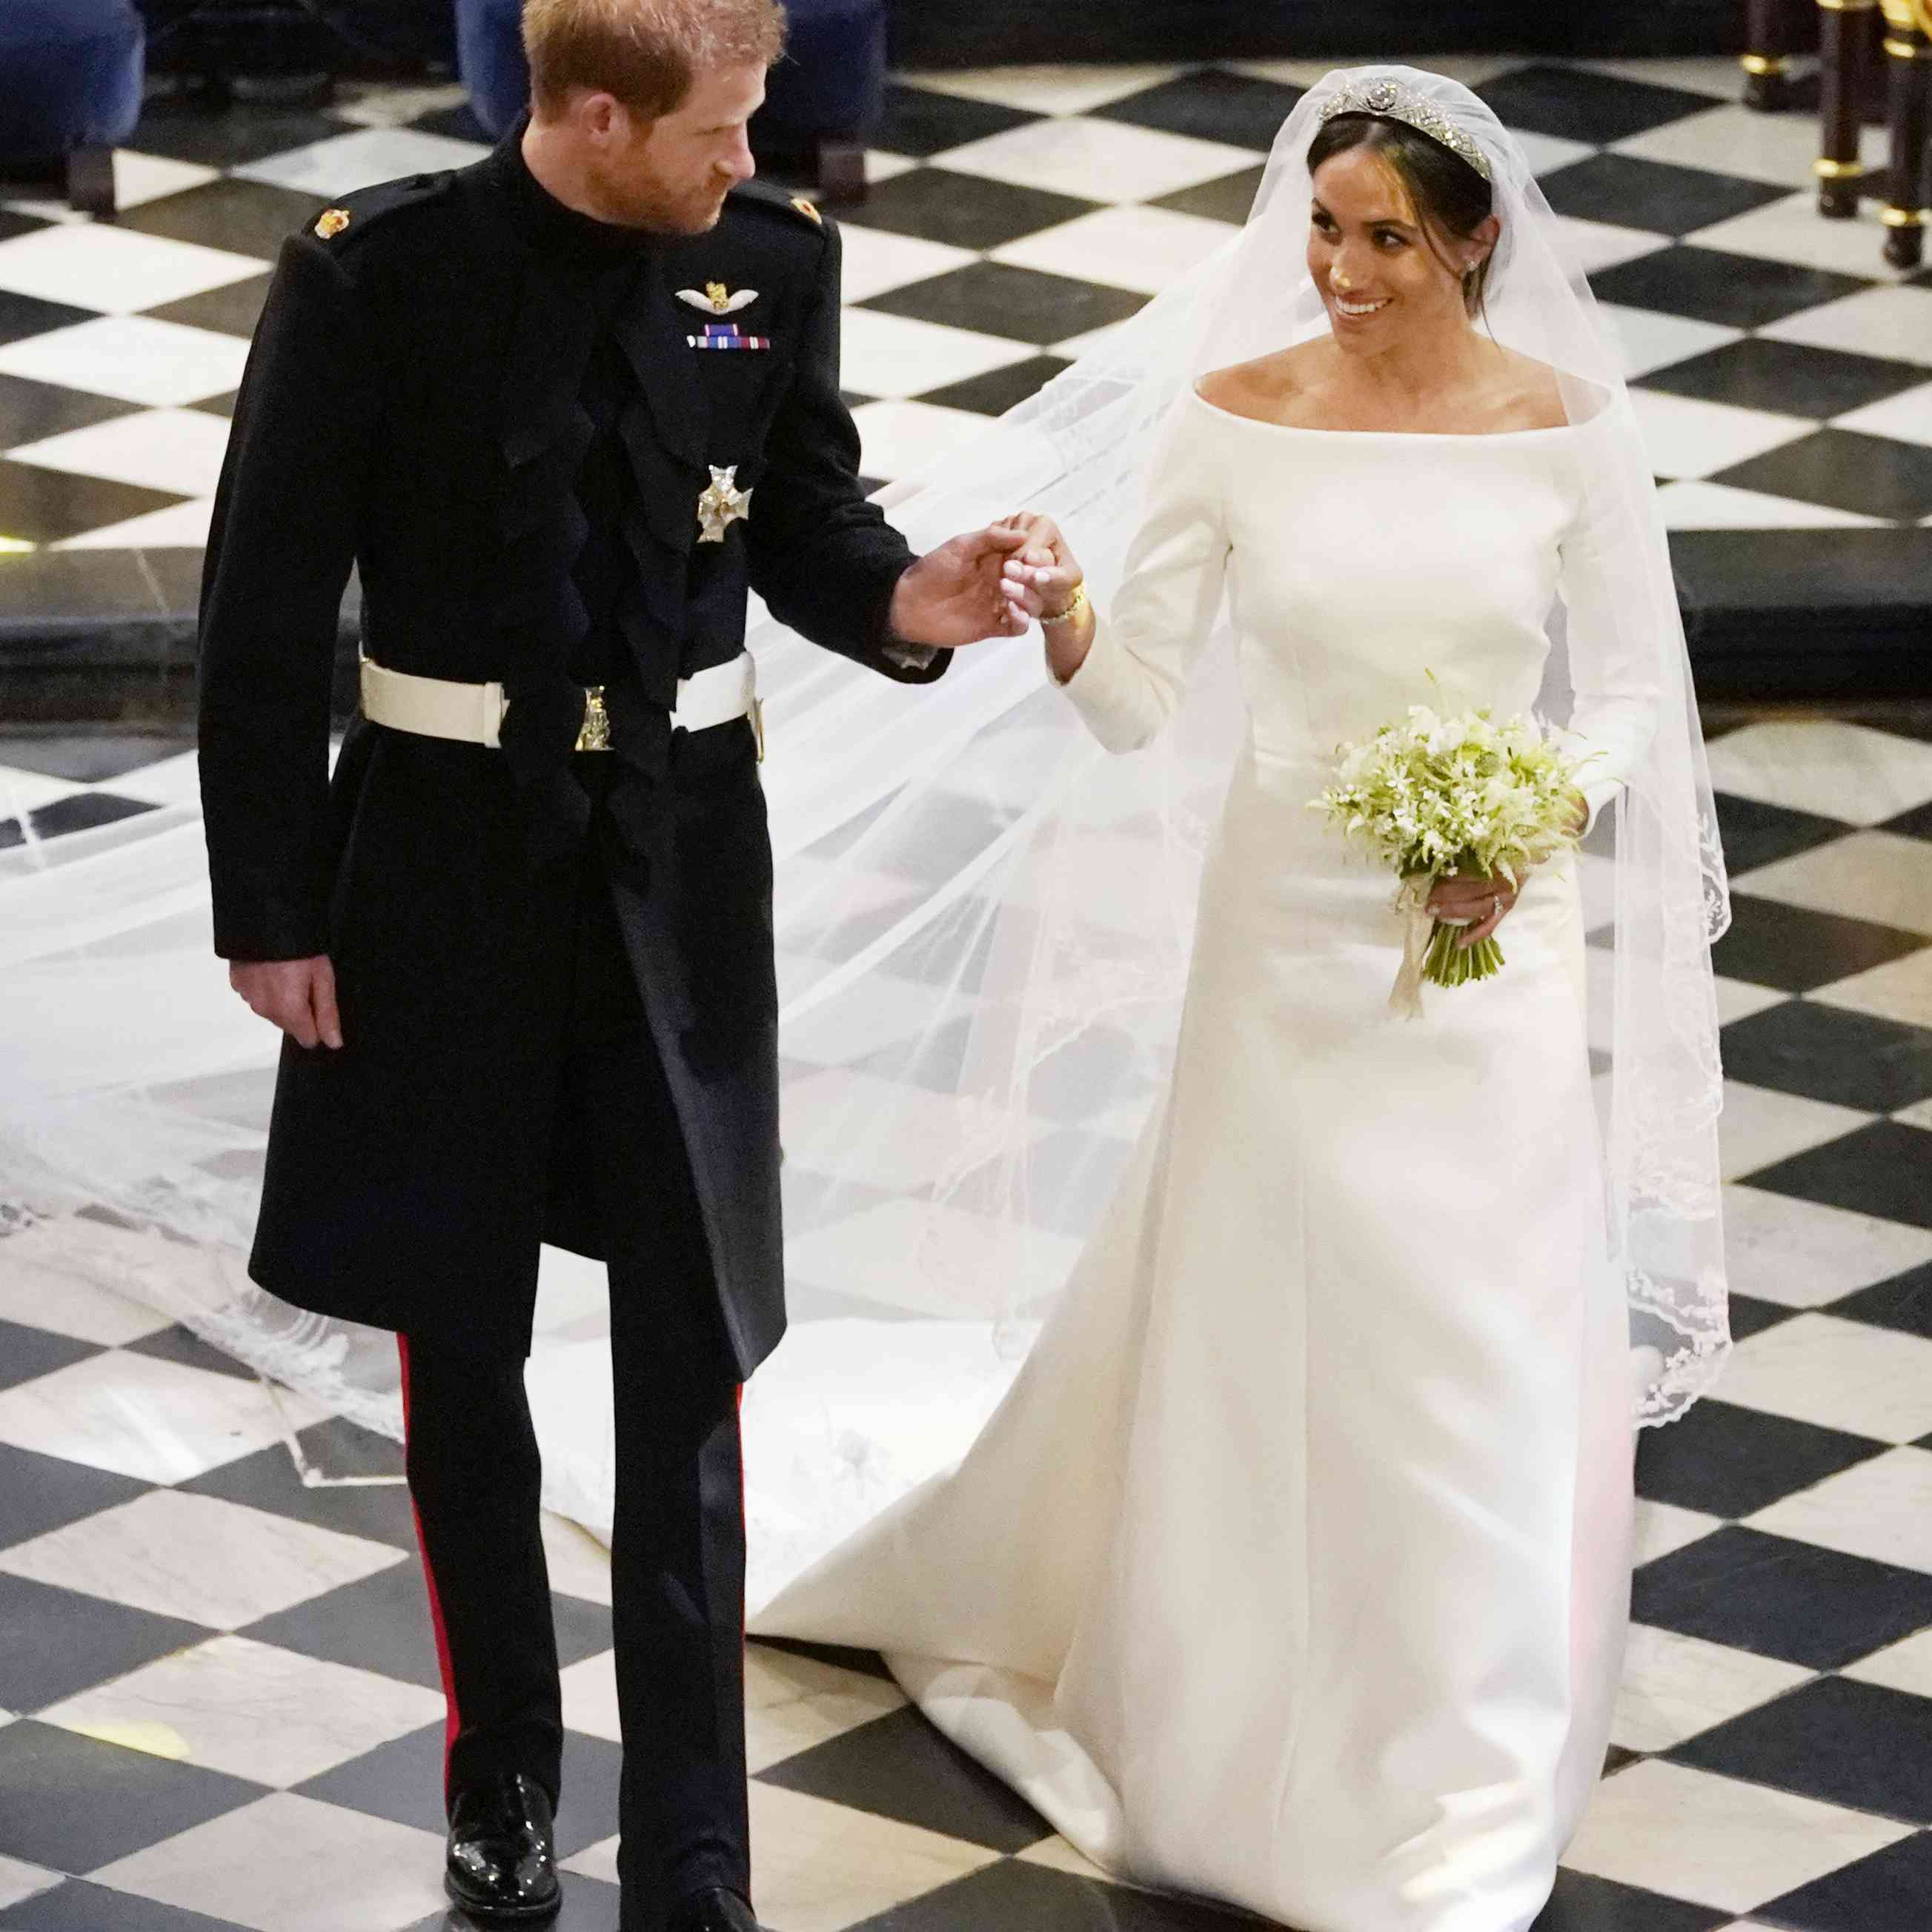 39 Of The Most Iconic Royal Wedding Dresses Throughout History